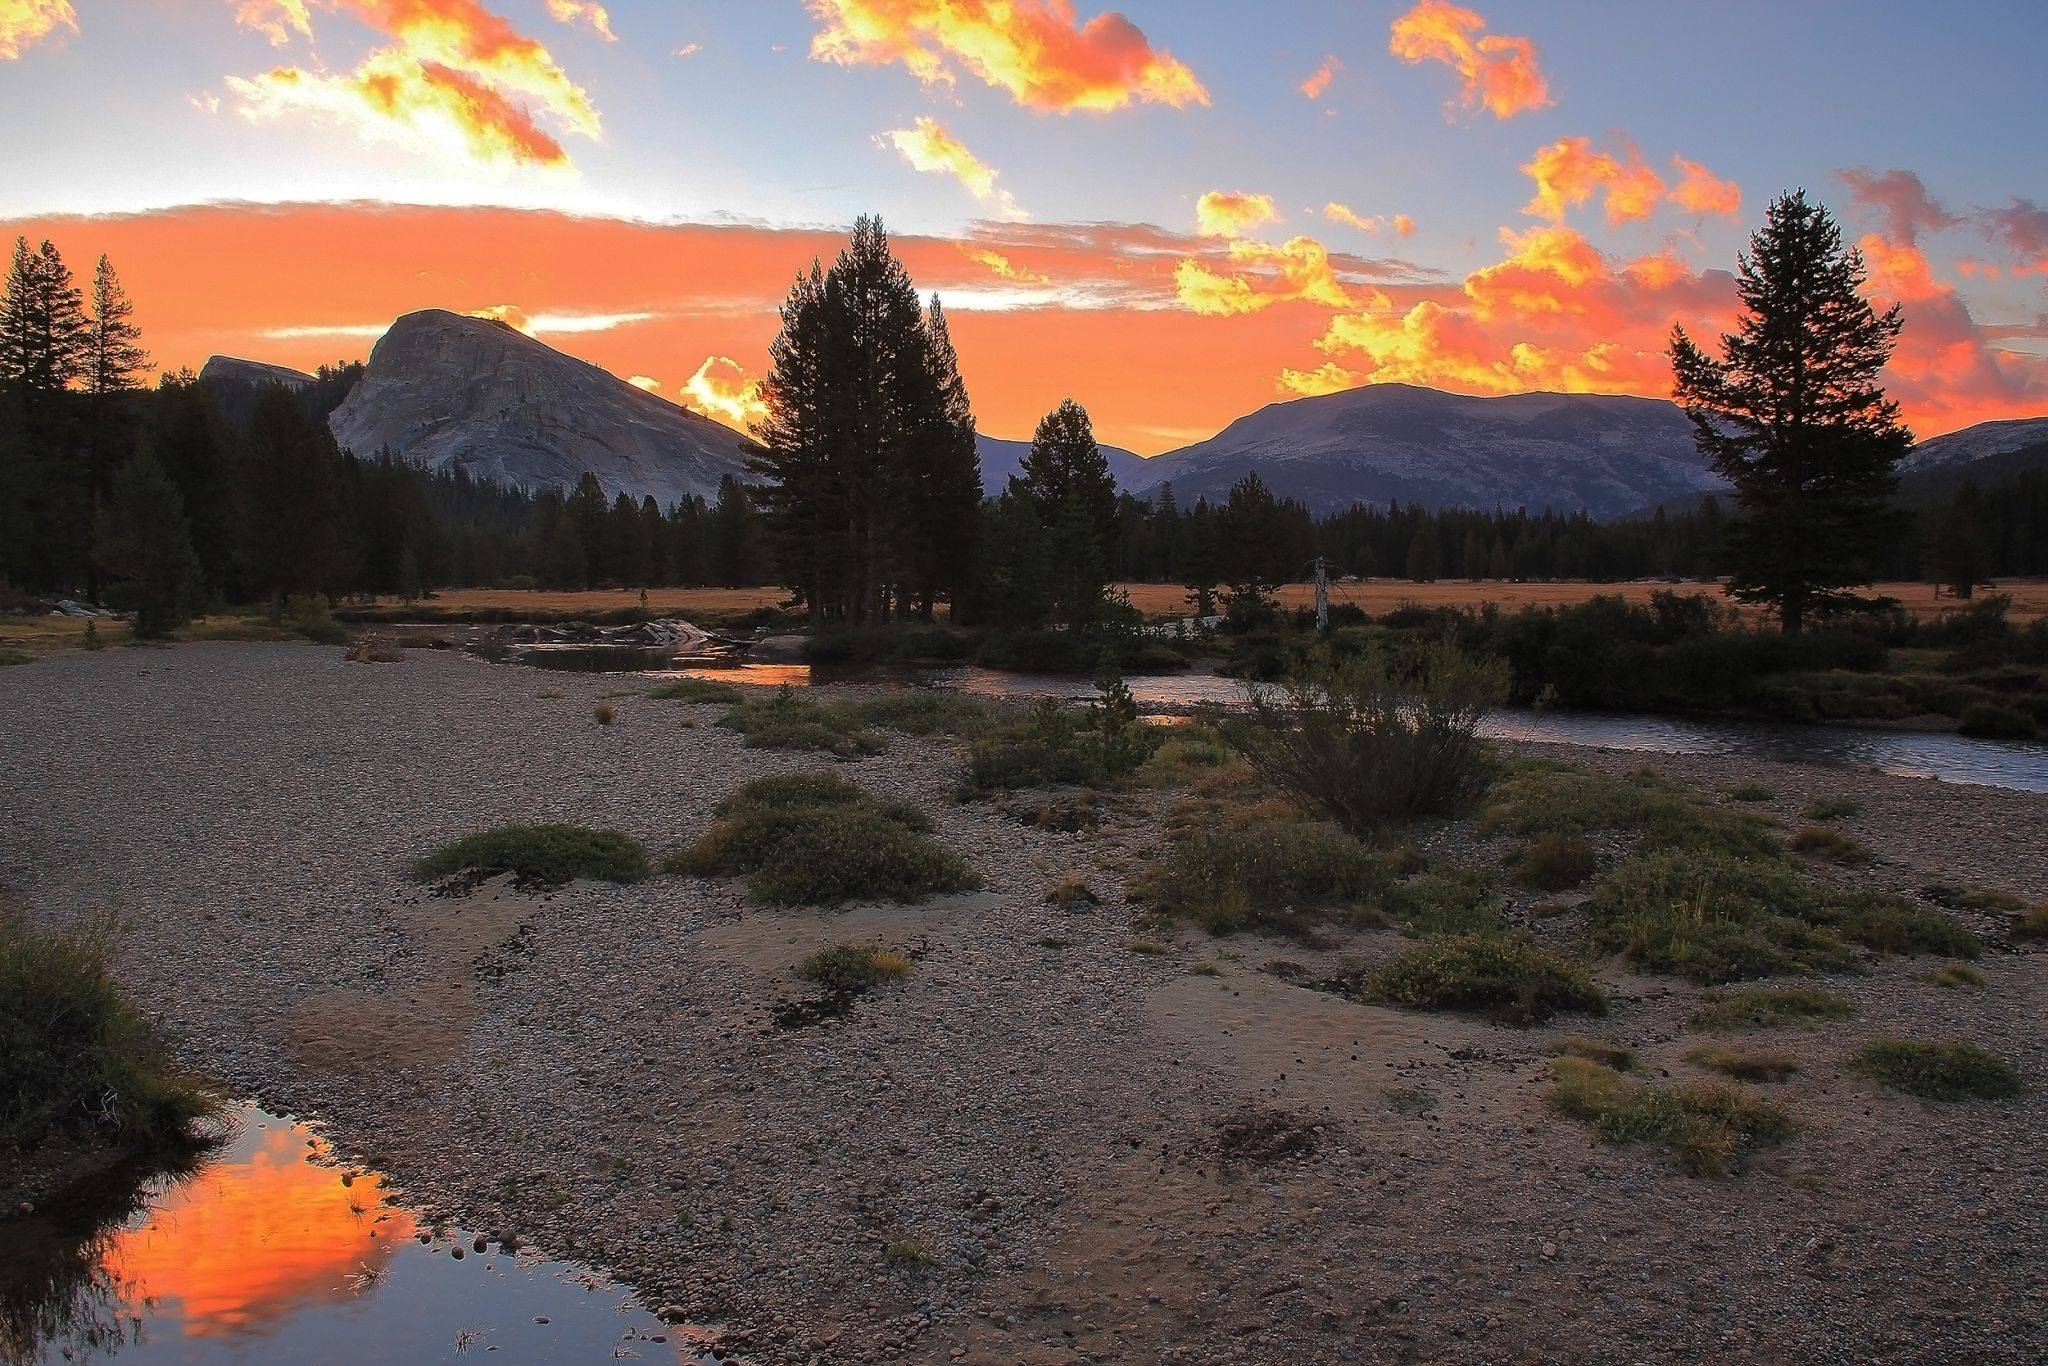 Sunrise by the Tuolumne River, USA